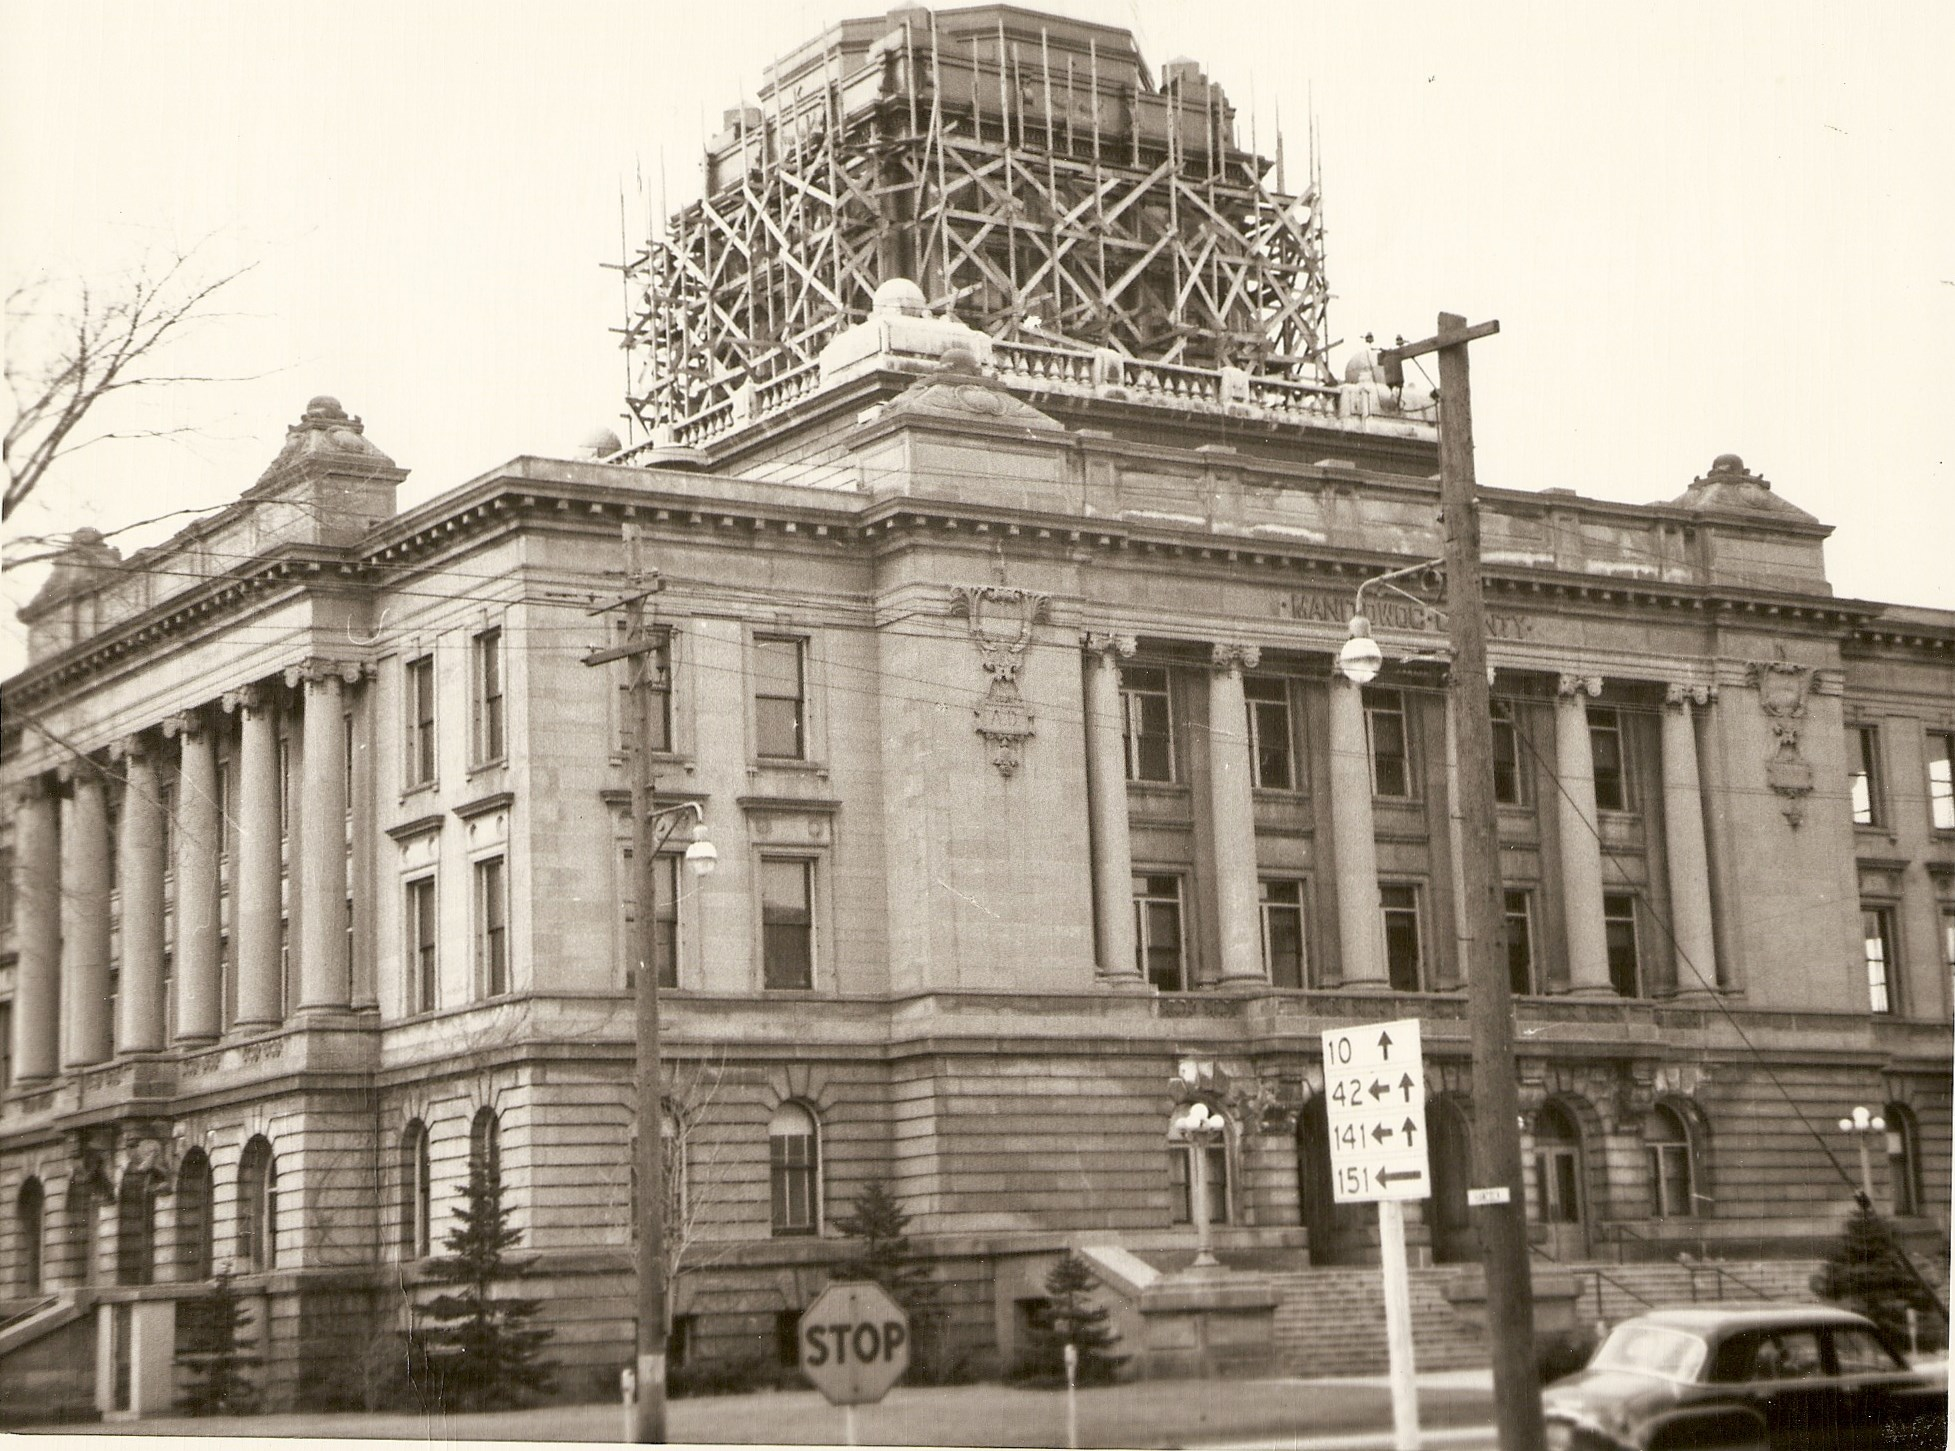 Manitowoc County Courthouse having maintenance done on it in early 1950s.  Looking east side from Hancock & S 8th St.